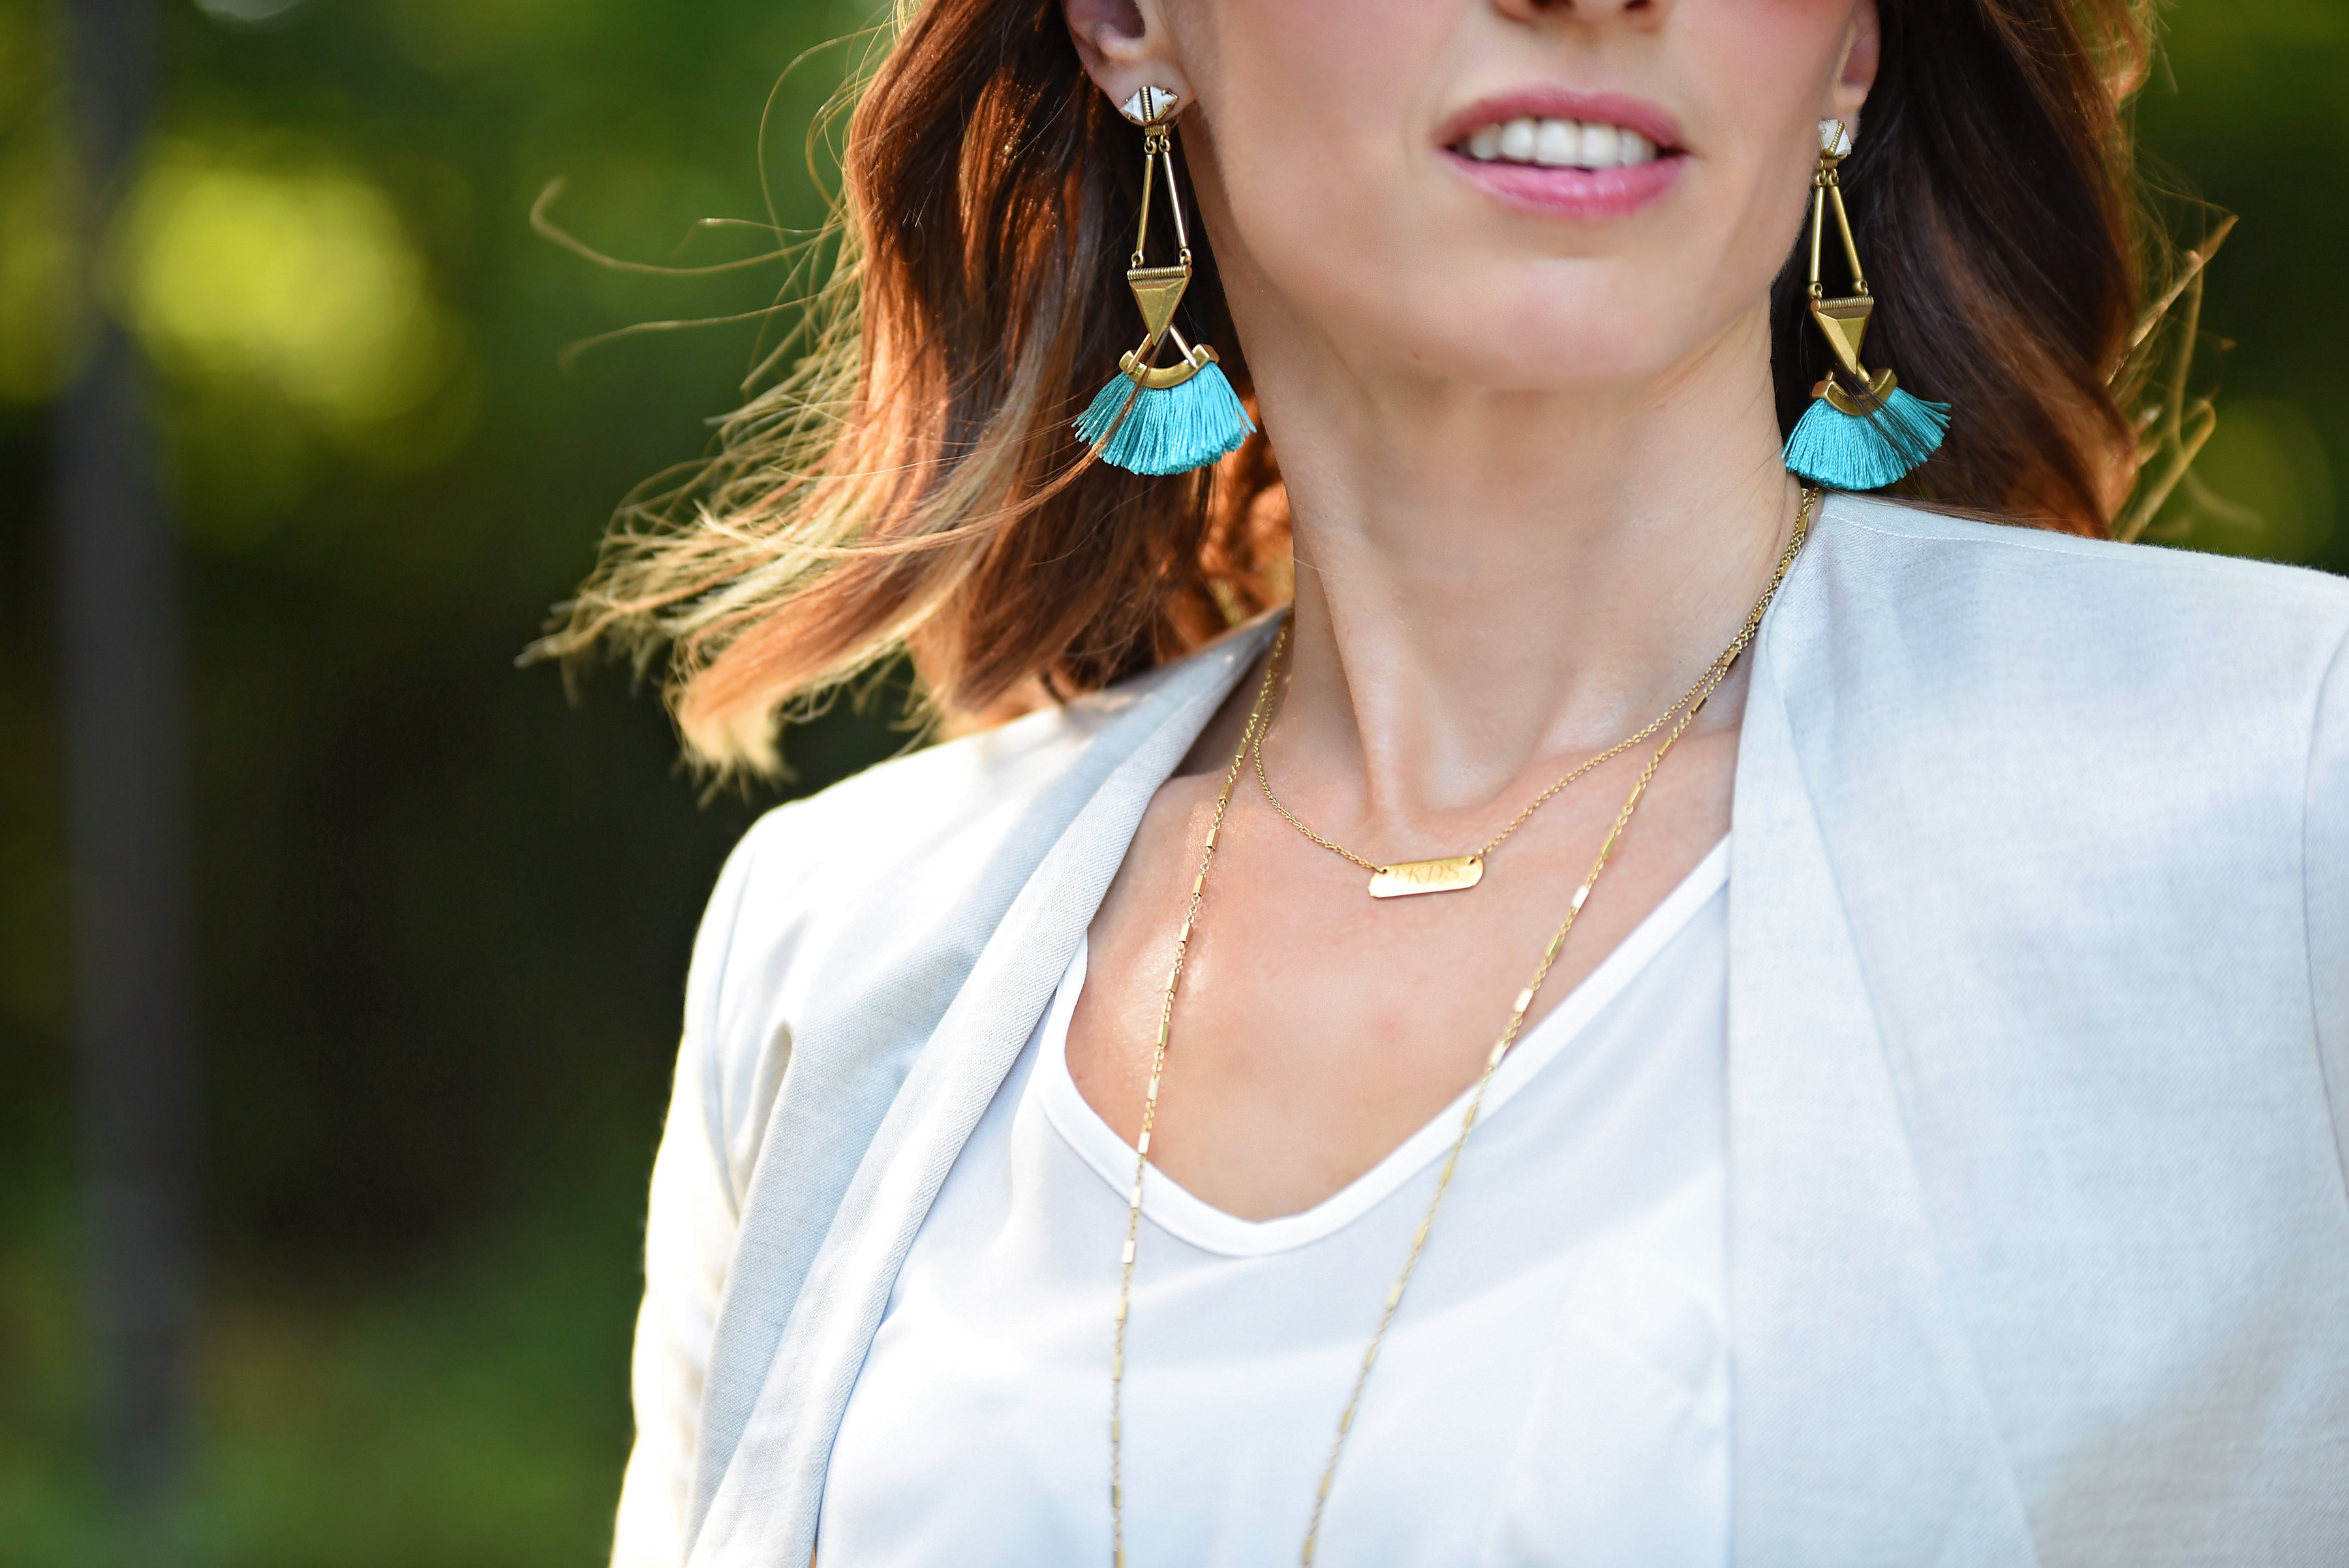 Method39, finish the look, accessorize, jewelry, earrings, bracelets, necklace, style, find your style, style advisor